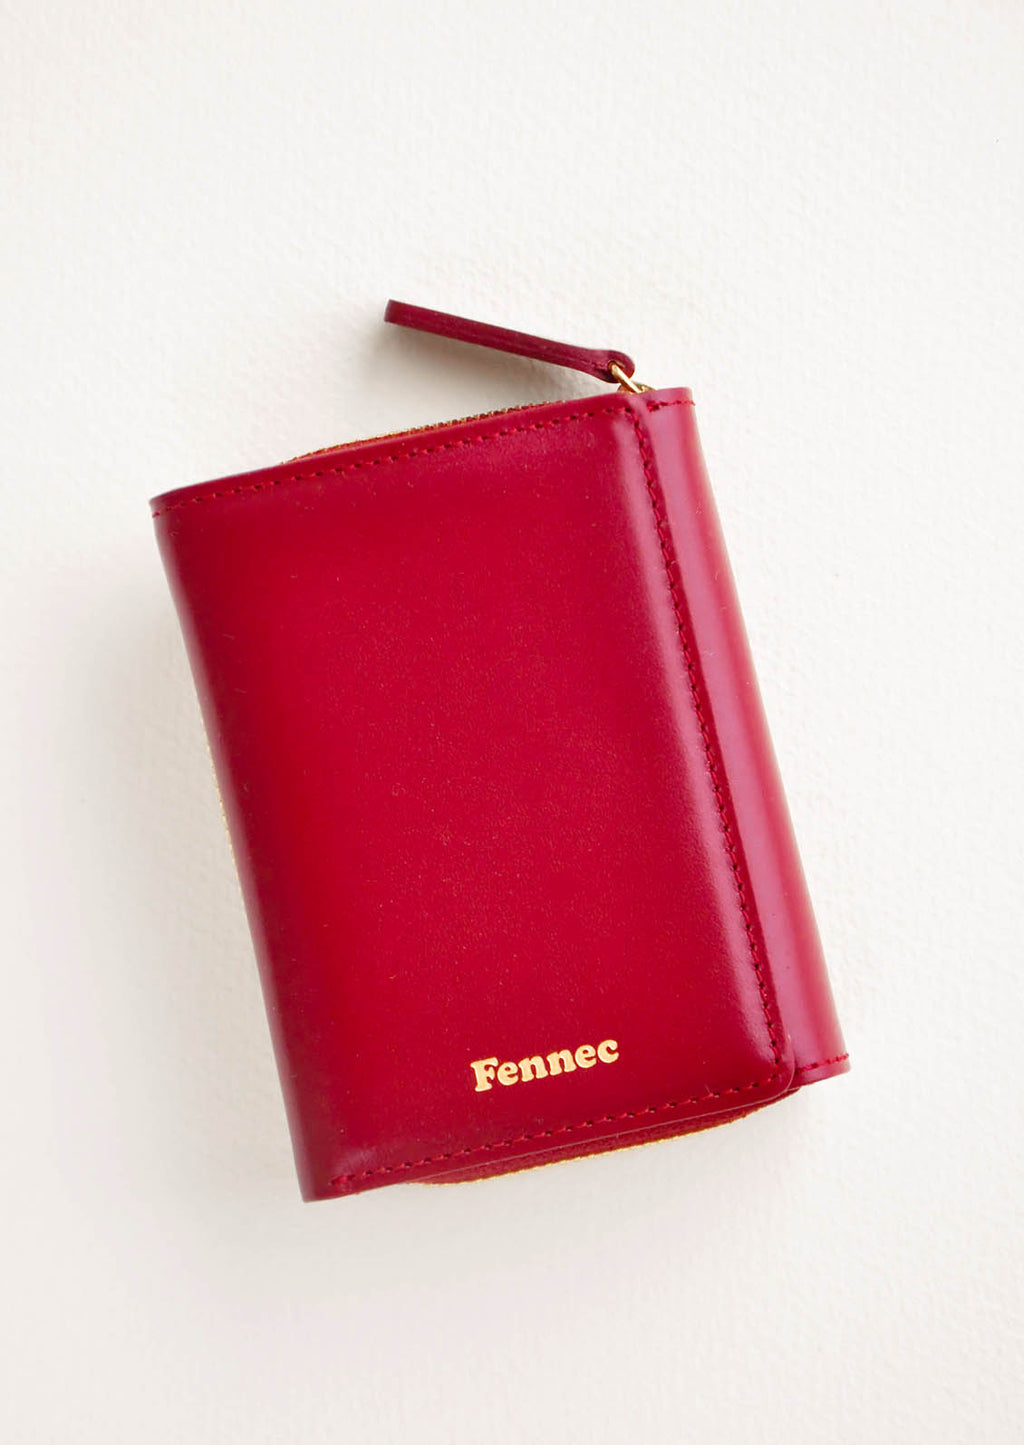 Marsala: Dark red leather wallet that zips on three sides, in a closed position, with matching tab pull.